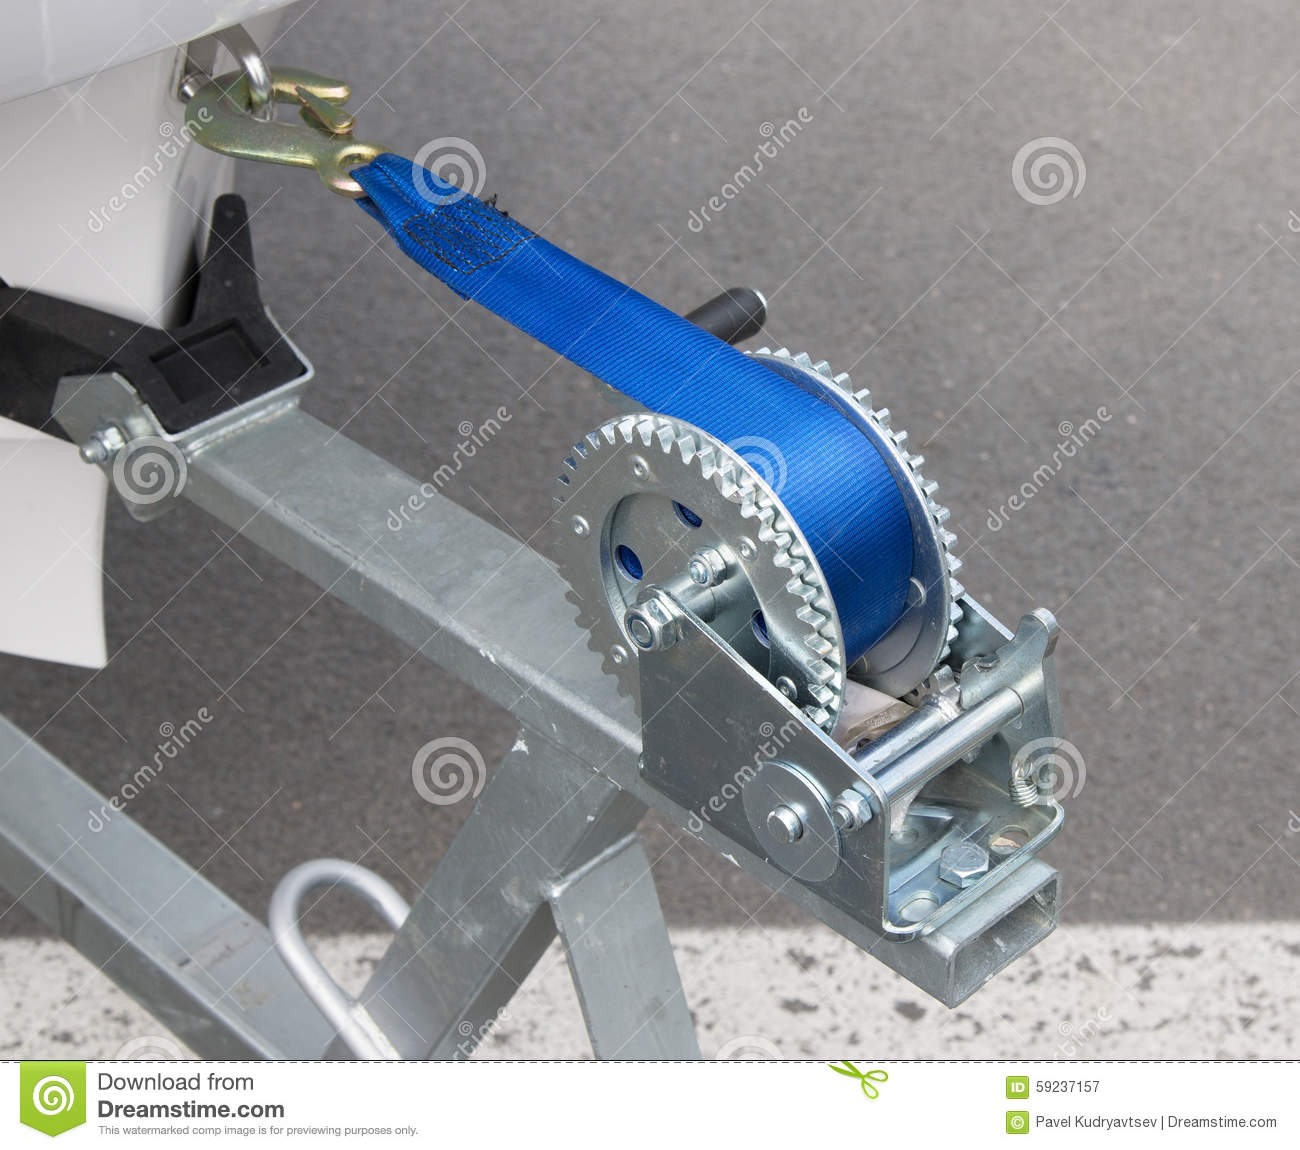 Boat Trailer Winch With Blue Rope Stock Photo - Image: 59237157